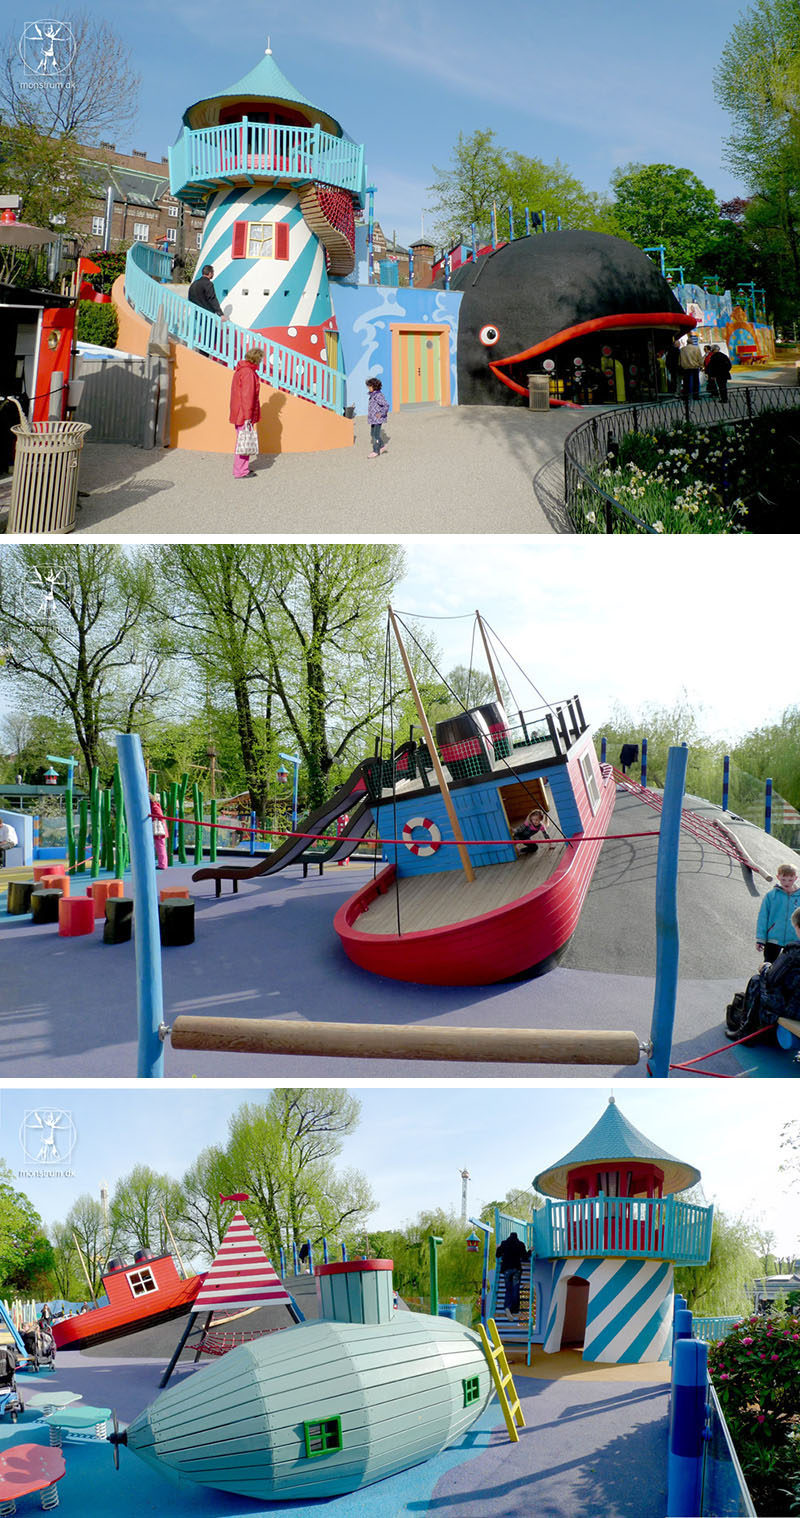 15 Amazing, Unique And Creative Playgrounds // A World Of Wonder With A Whale, Lighthouse, Submarine And Boat.